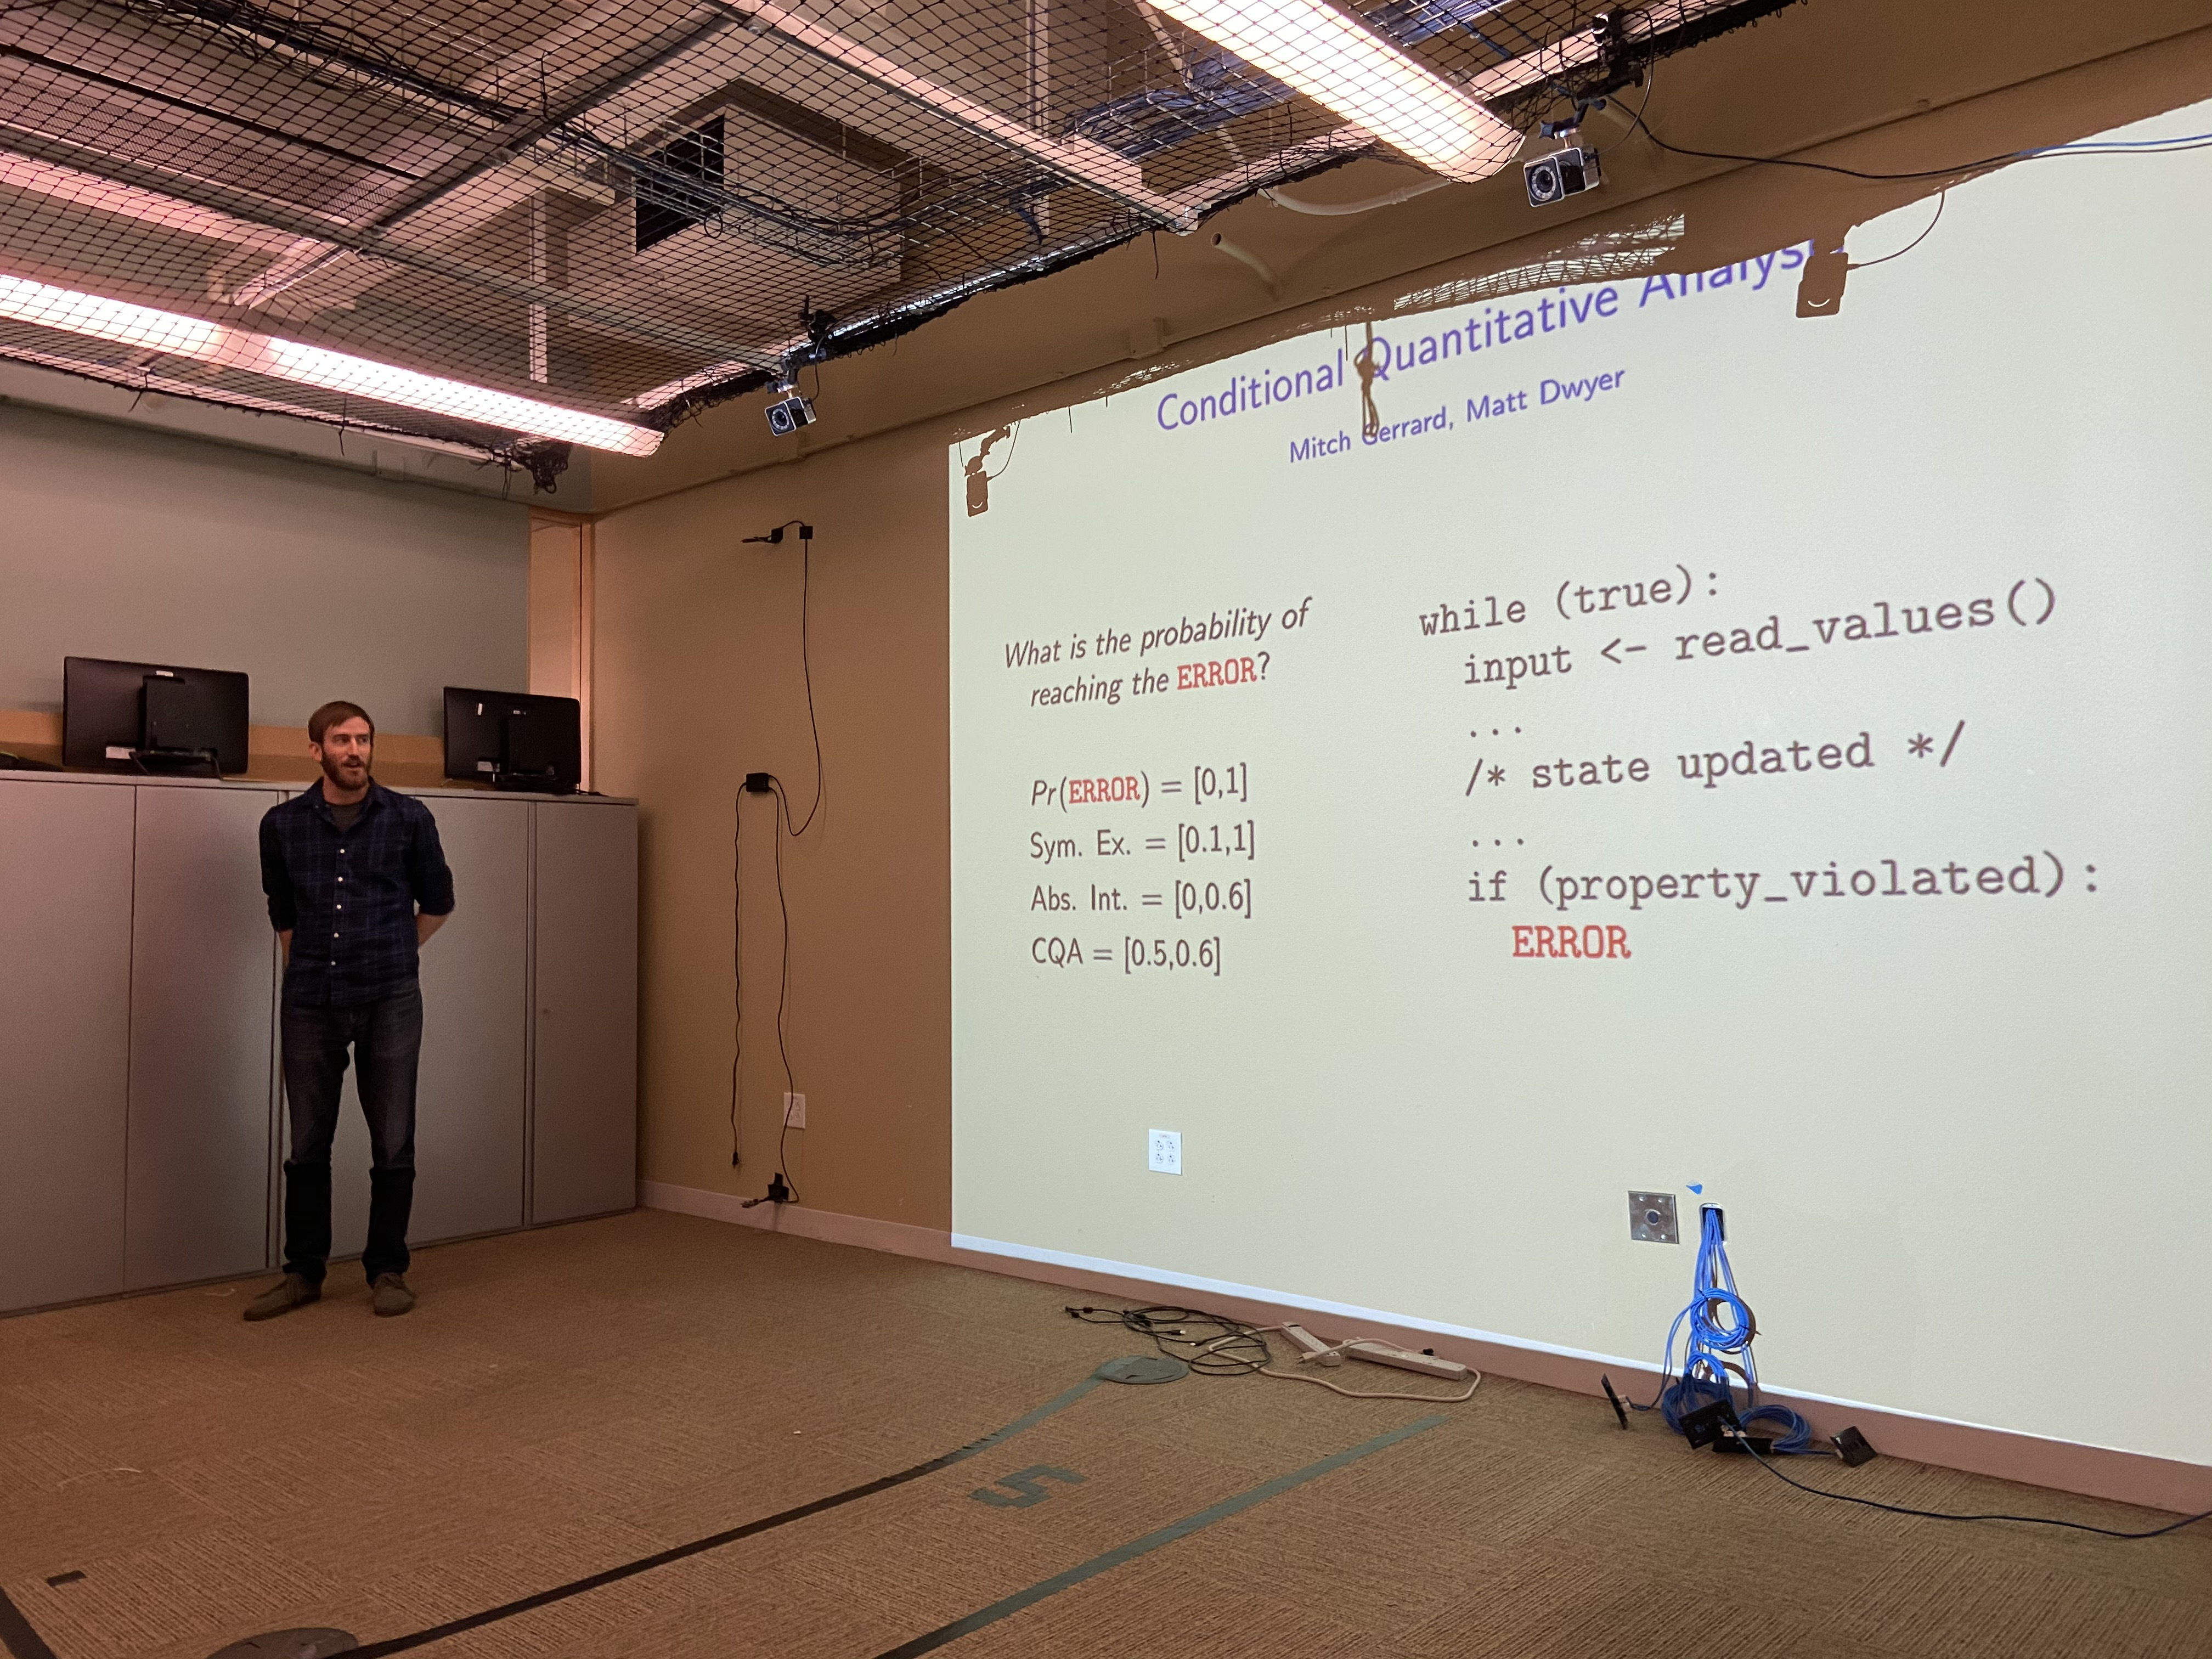 Mitch giving a talk on some of his previous work on software analysis.